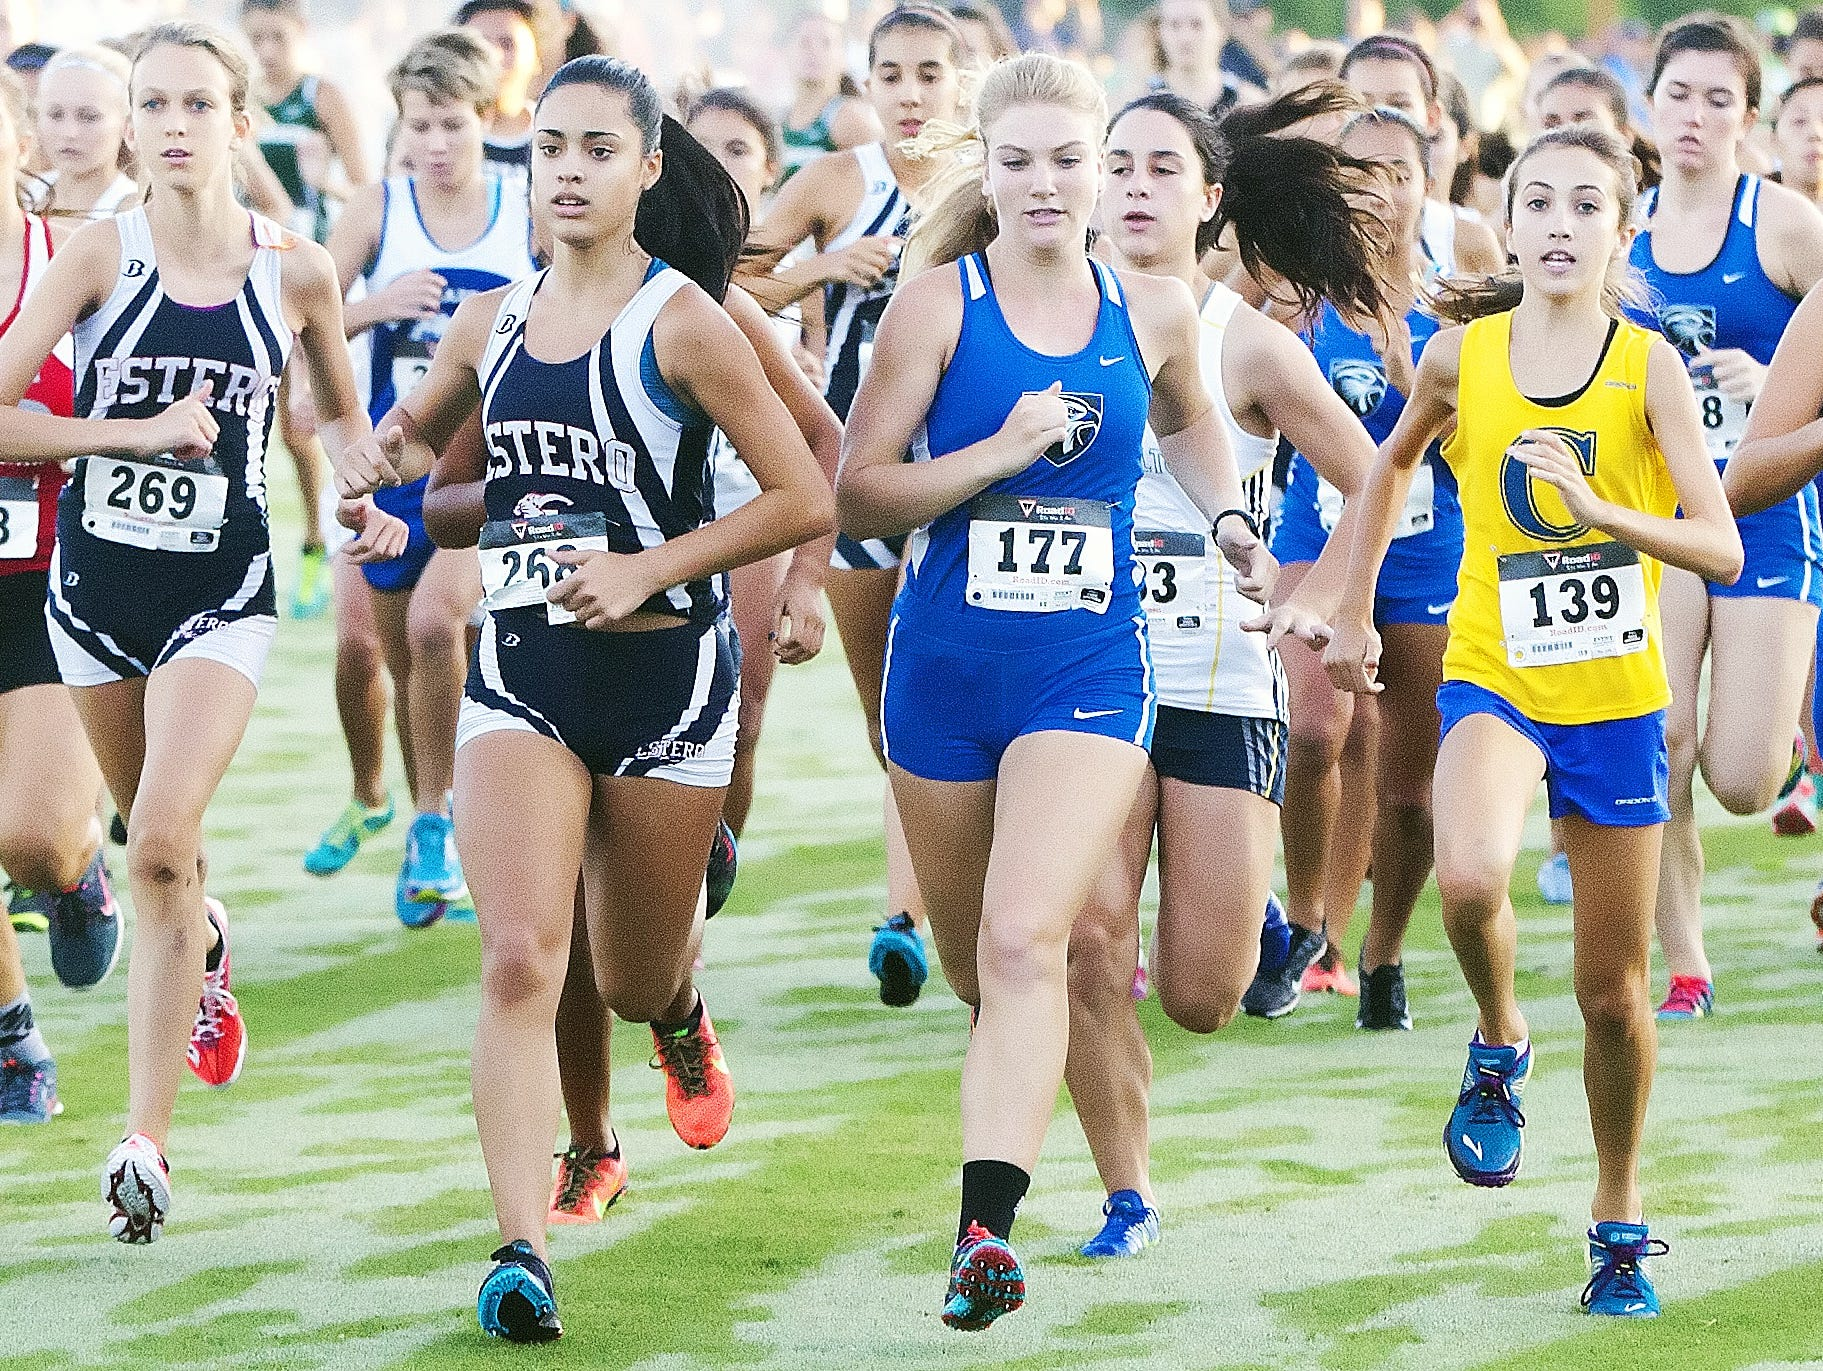 Estero's Megan Giovanniello, left center, is one of a handful of runners expected to contend for top finishes at region races on Friday and Saturday.